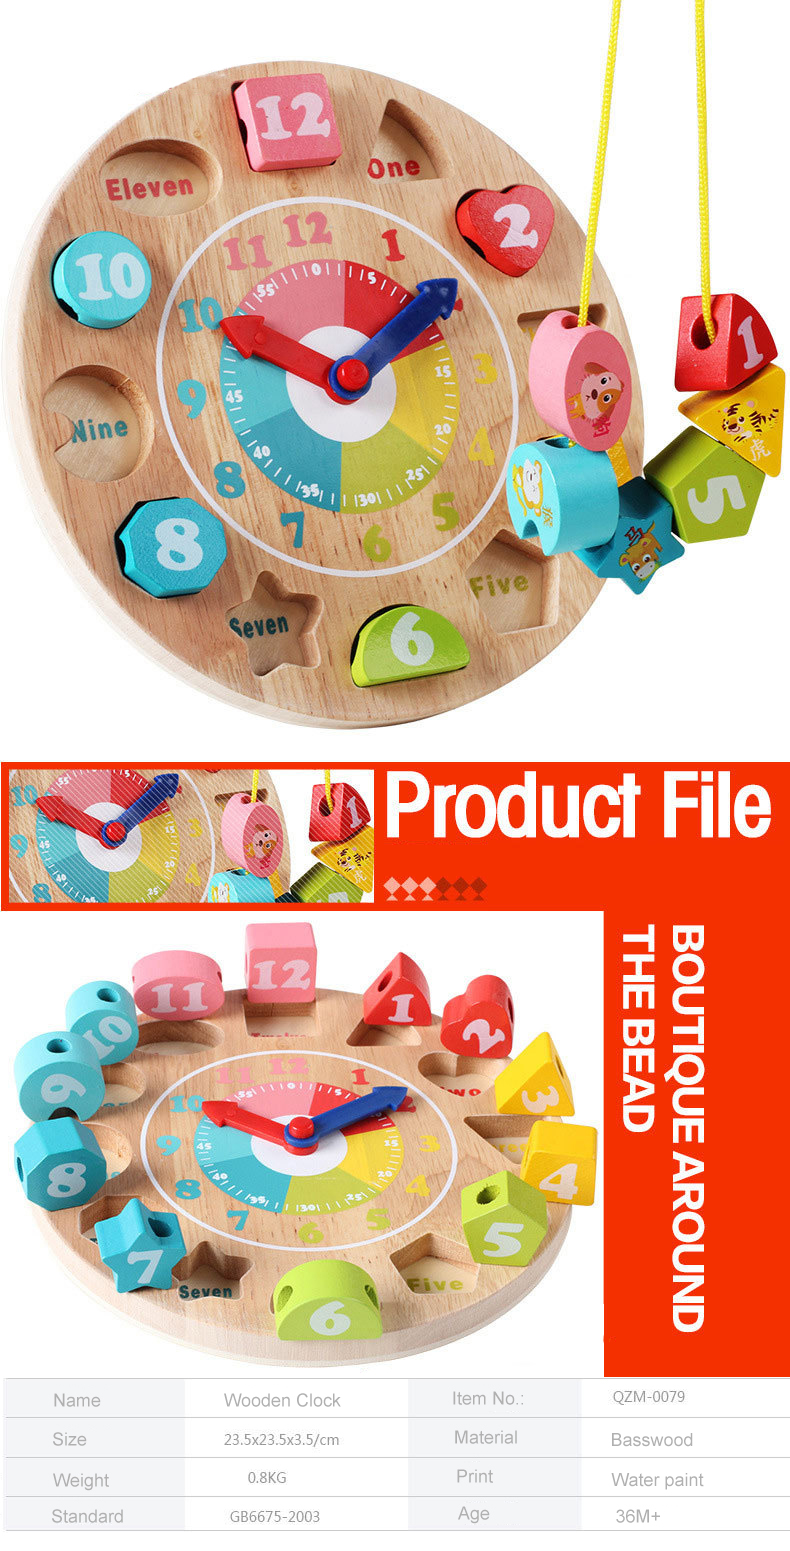 Baby toy wooden toys wooden clock model building blocks Number and Animal Beaded Monterssori learning educational board games 1